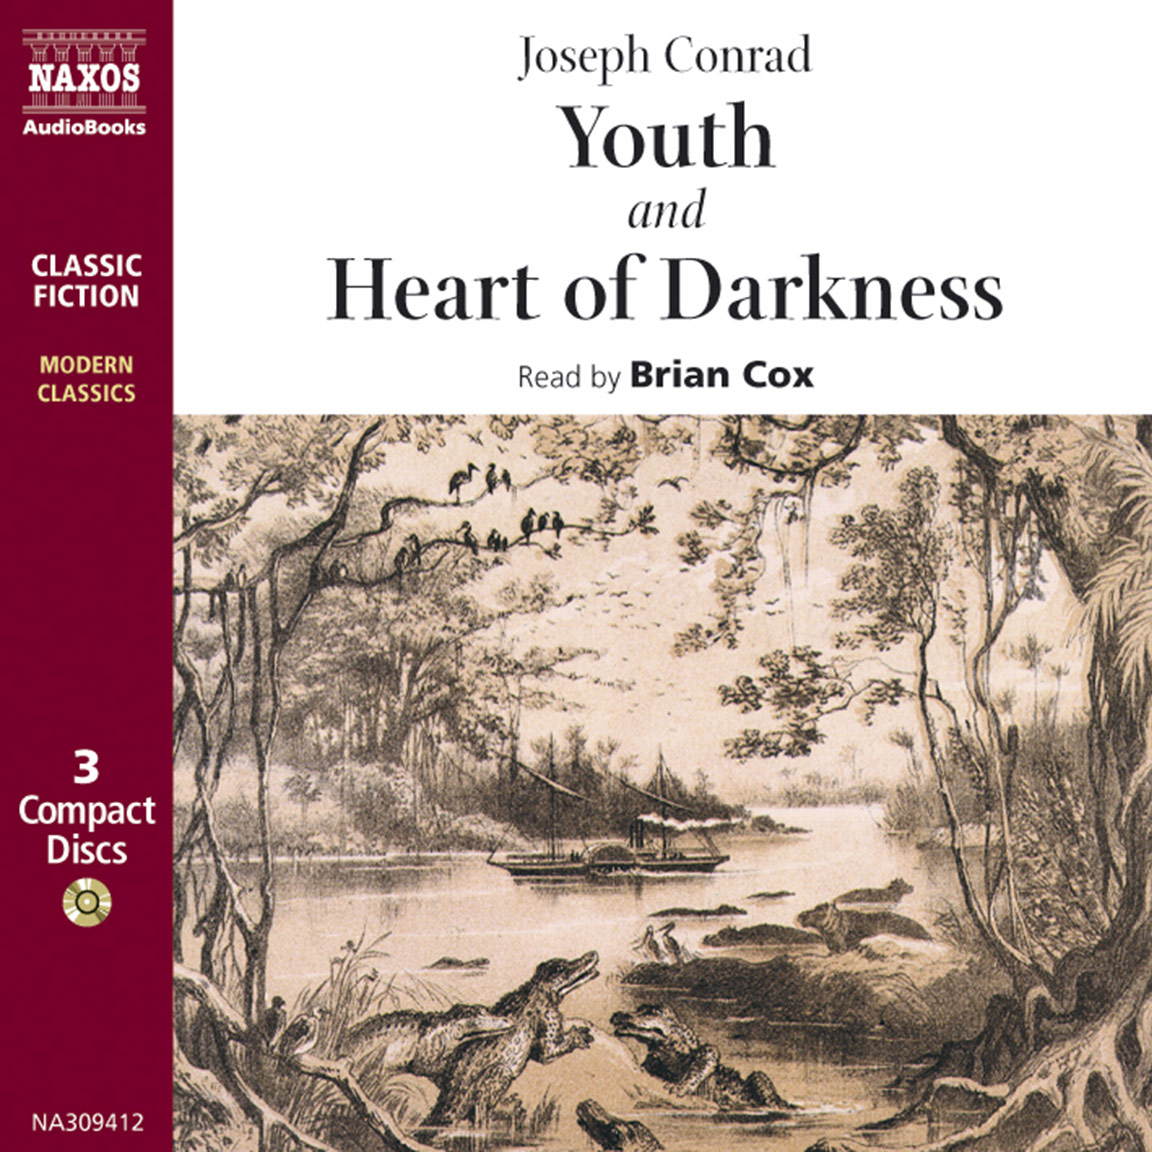 an analysis of charlie marlow and his struggle in joseph conrads heart of darkness The mind of man in heart of darkness by joseph conrad the changes take place inside you know the doctor warns marlow in heart of darkness (9) joseph conrad, the author of heart of darkness, uses the words of the doctor to warn the readers of the changes marlow faces on his journey.